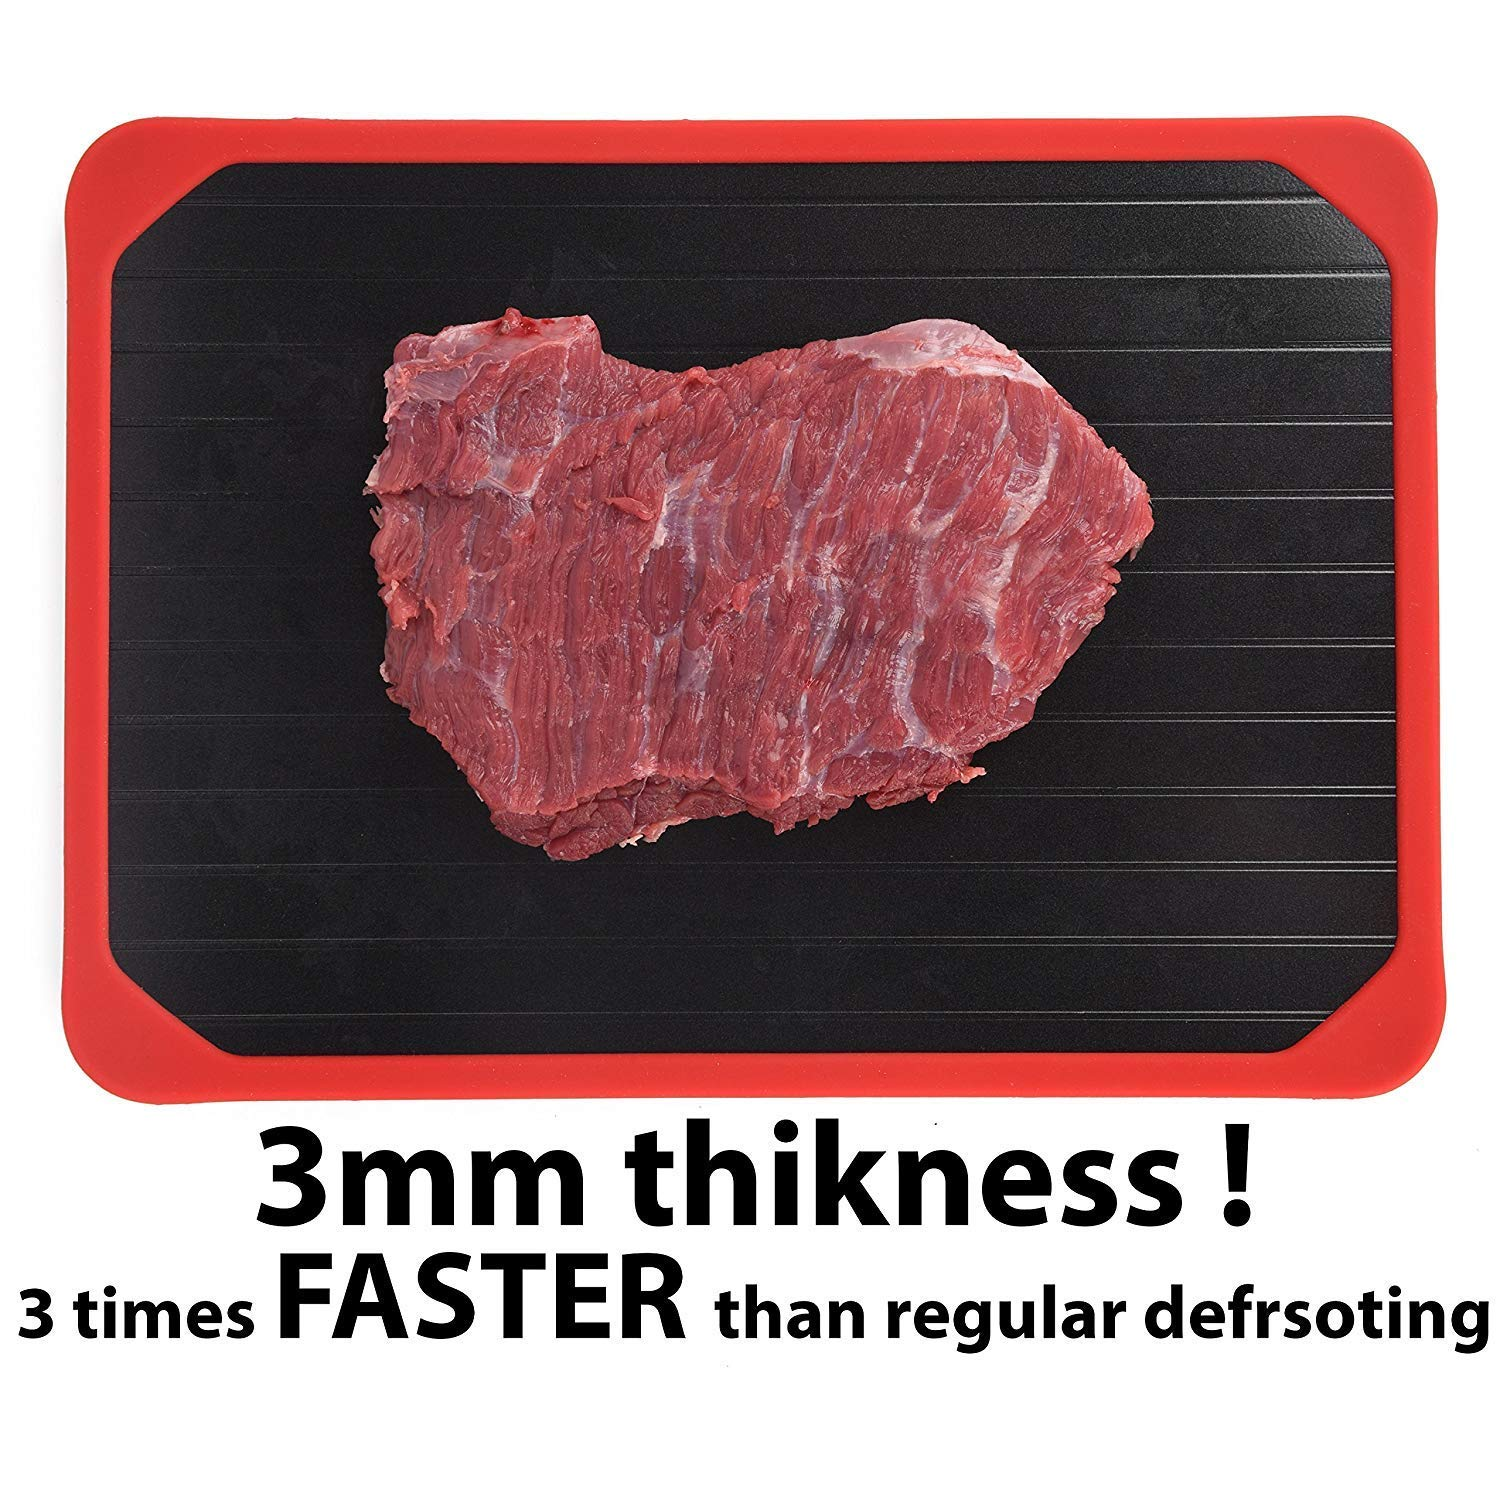 Defrosting Tray, Defrosting Tray with Red Silicone Border, Thawing Plate, The Safest Way to Defrost Meat or Frozen Food Beef Chicken Quickly No battery No Microwave, Fast rapid Thawing Plate